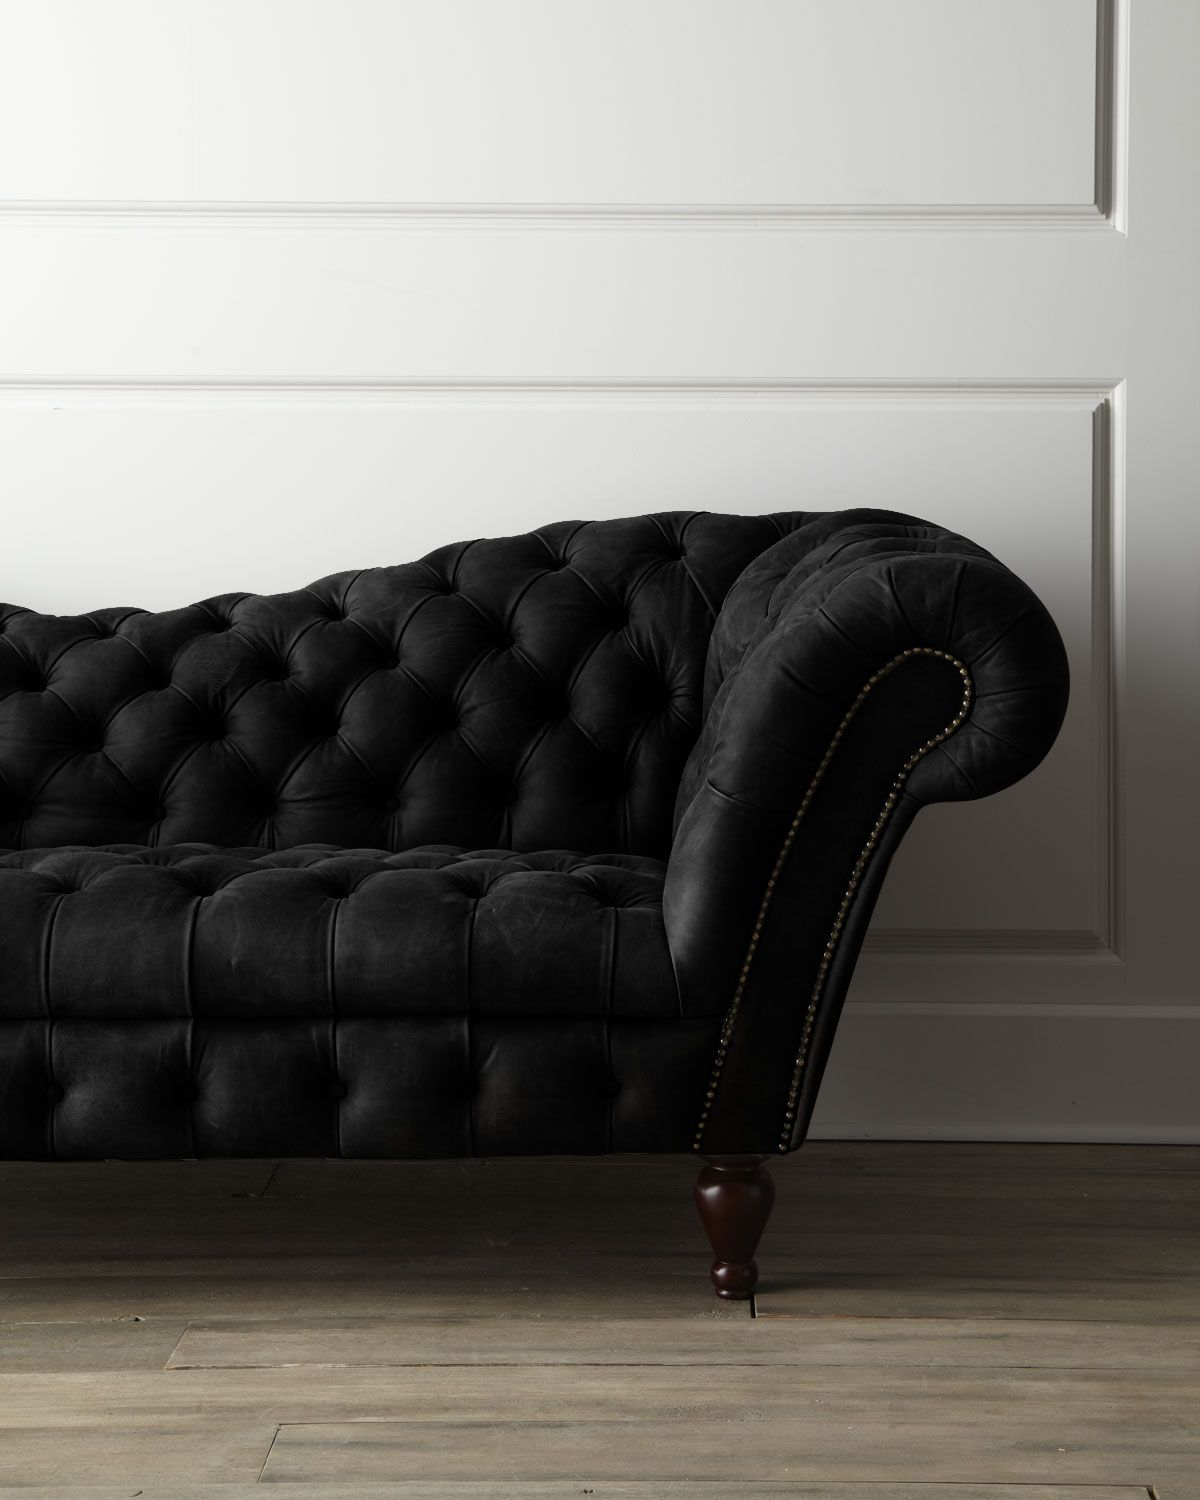 Black leather recamier sofa neiman marcus beauty edgy blackwell008